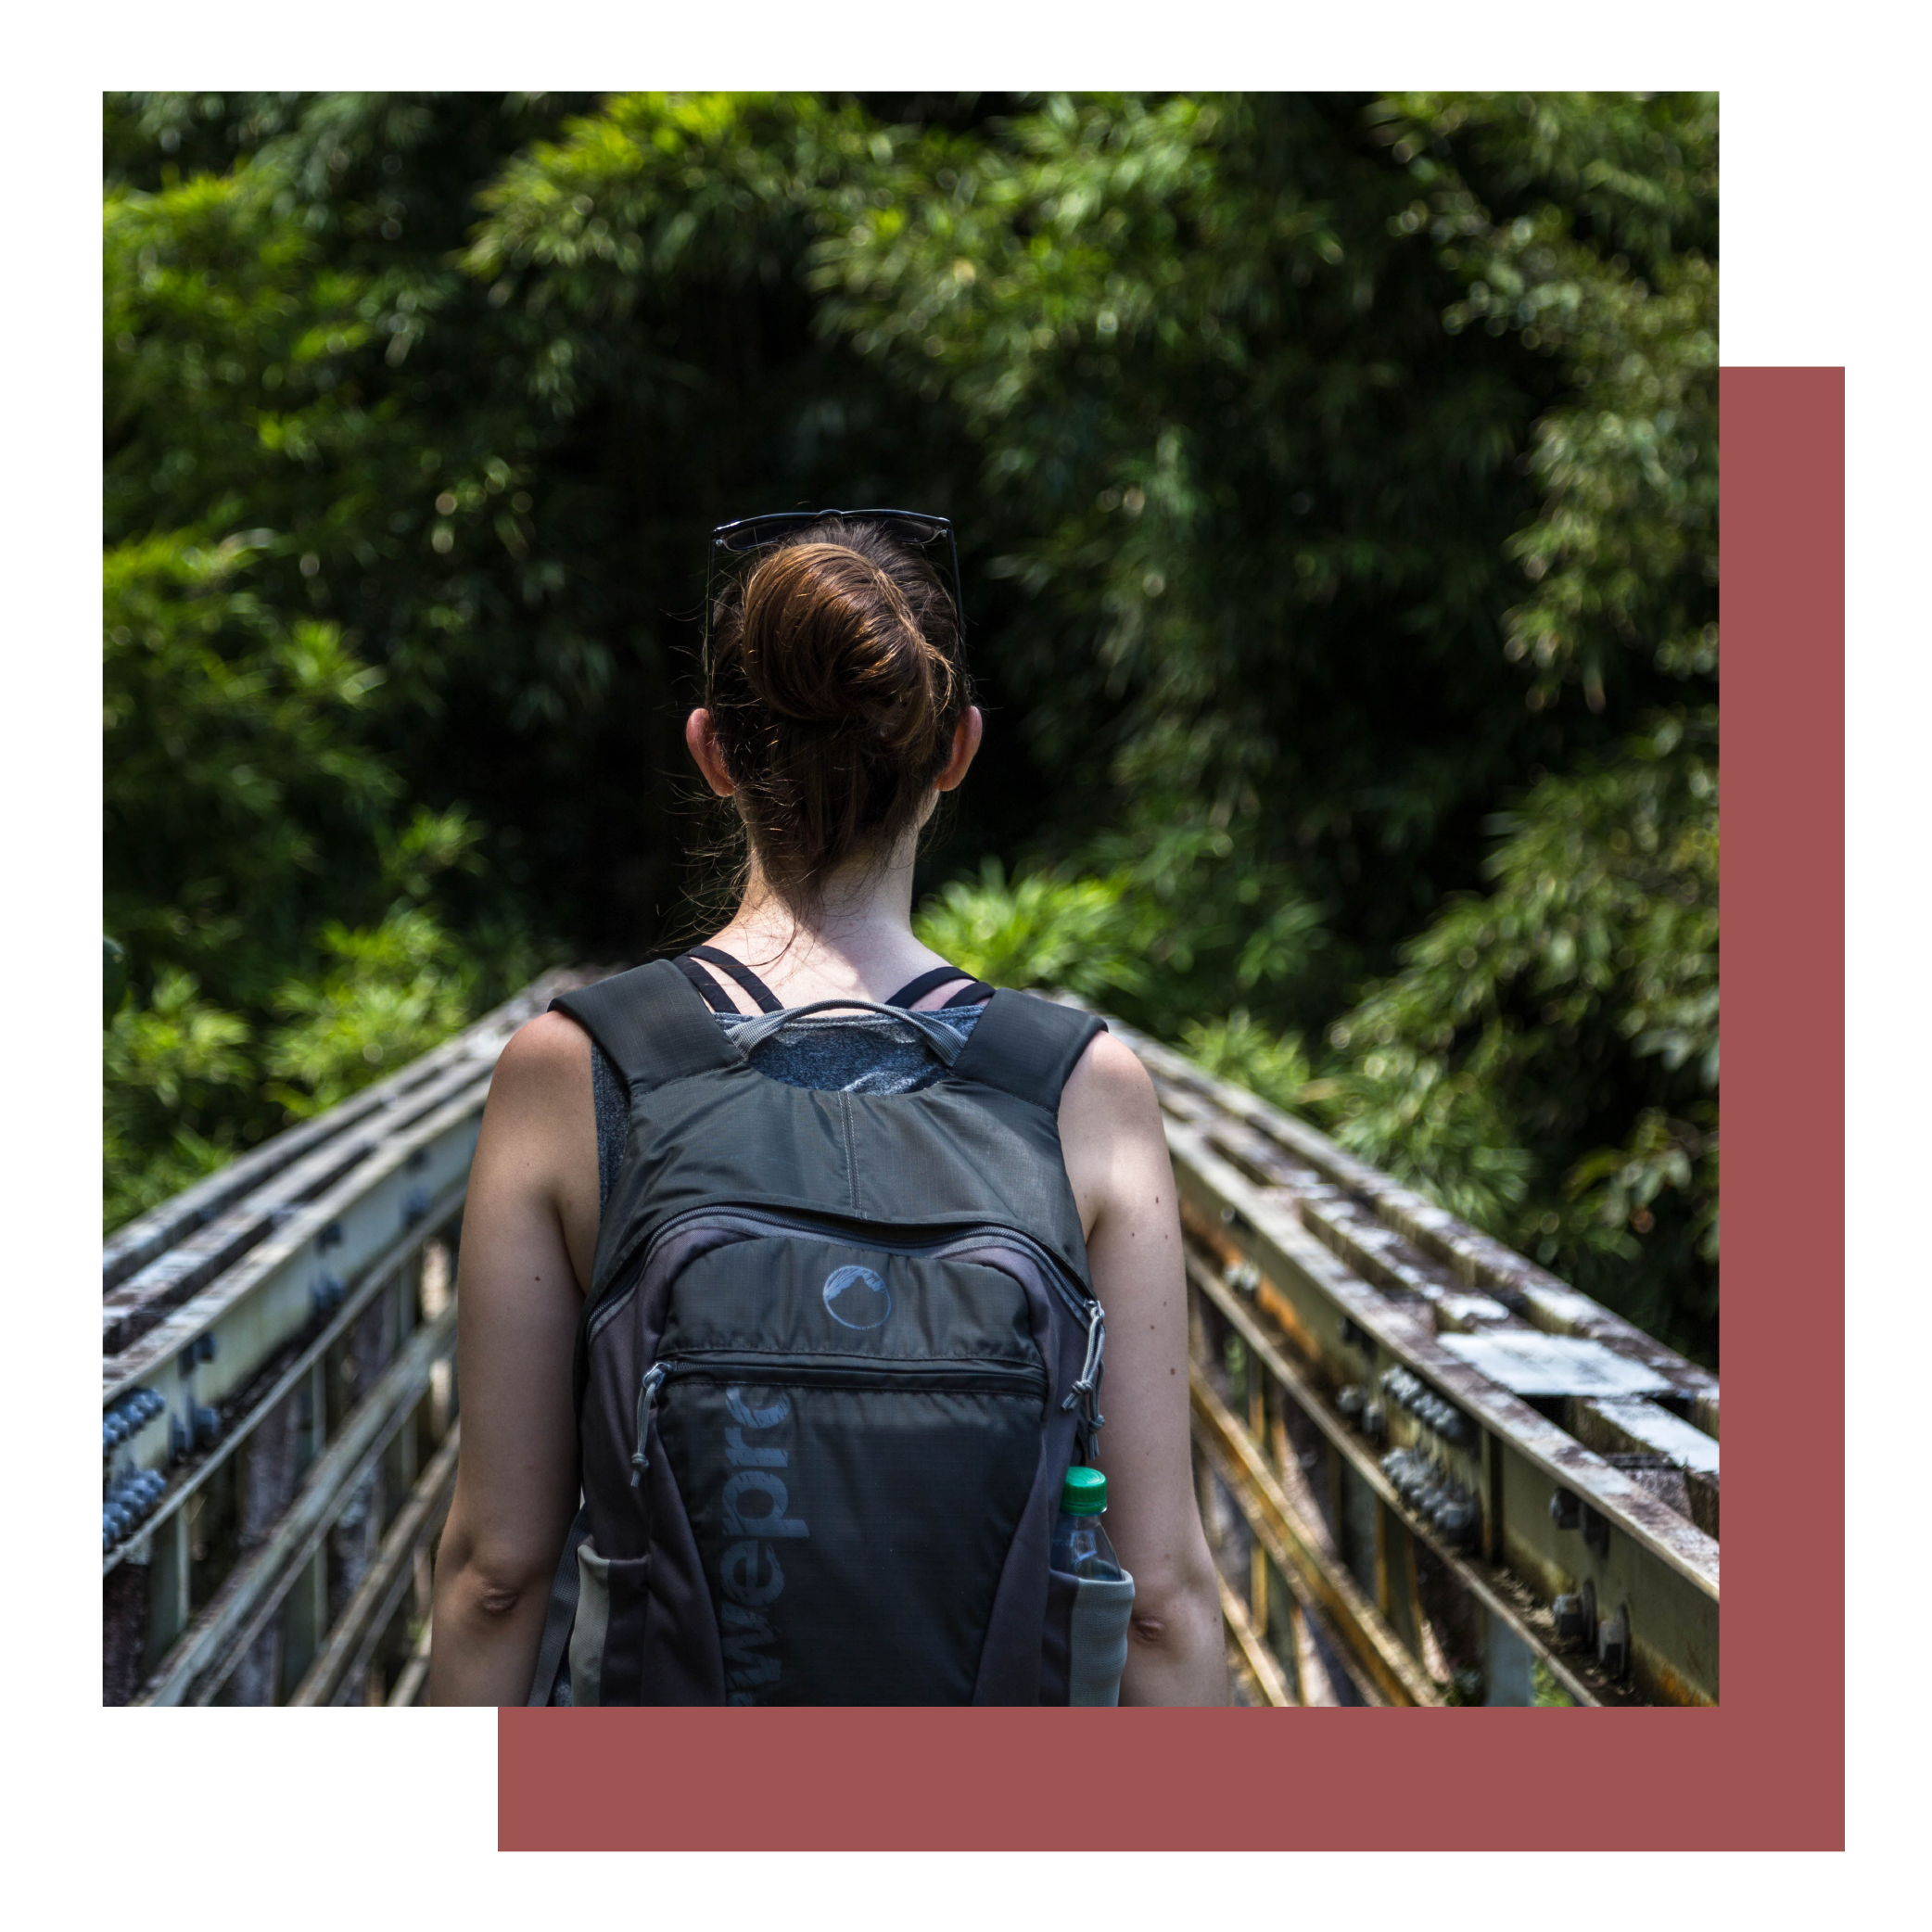 Time for you, in nature. - All retreats include hikes and time spent in nature. Don't feel prepared? We include resources, nutrition tips, and proper training so you feel prepared before the retreat starts.